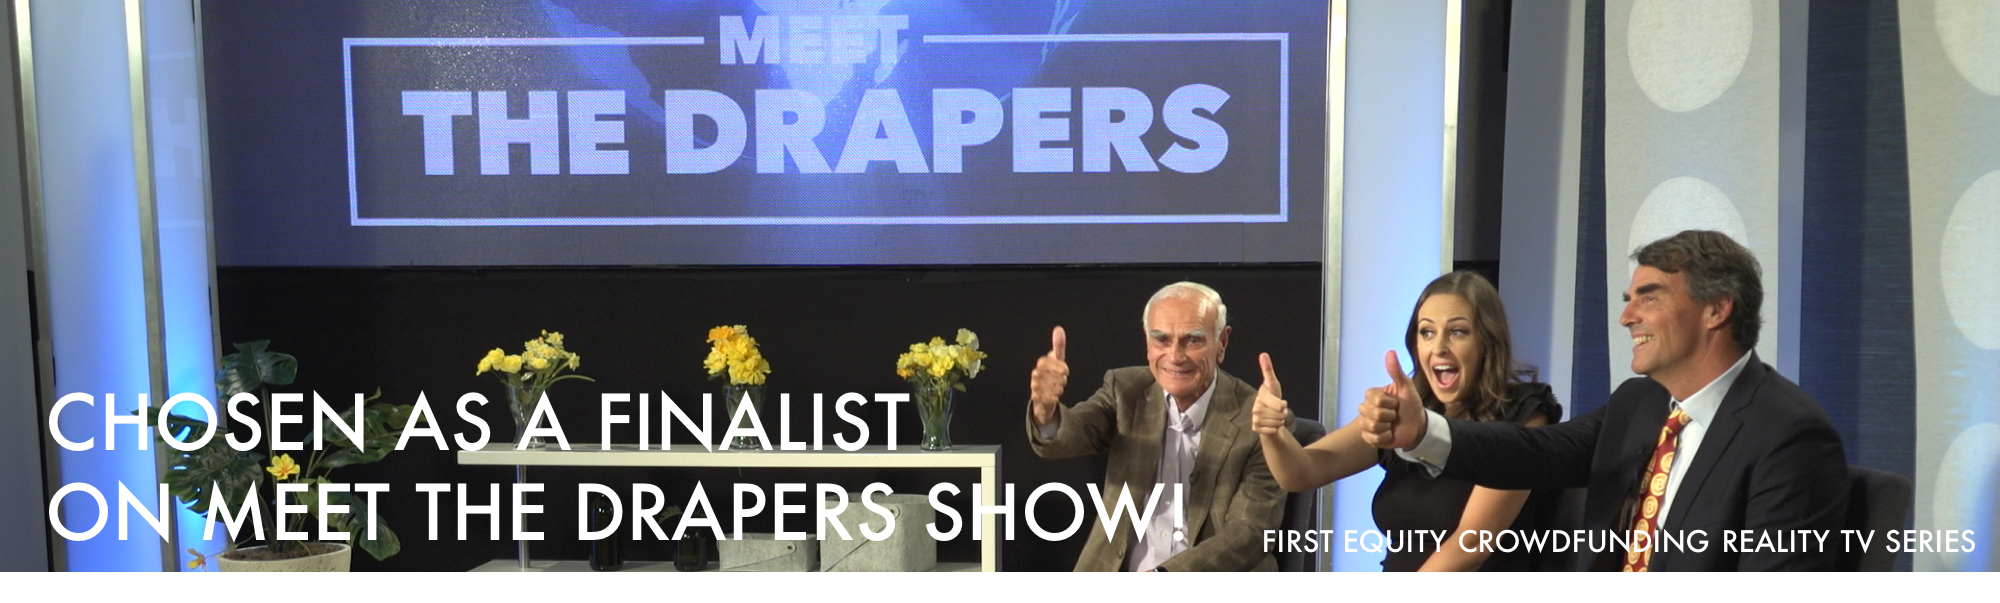 Chosen as a finalist on Meet the Drapers